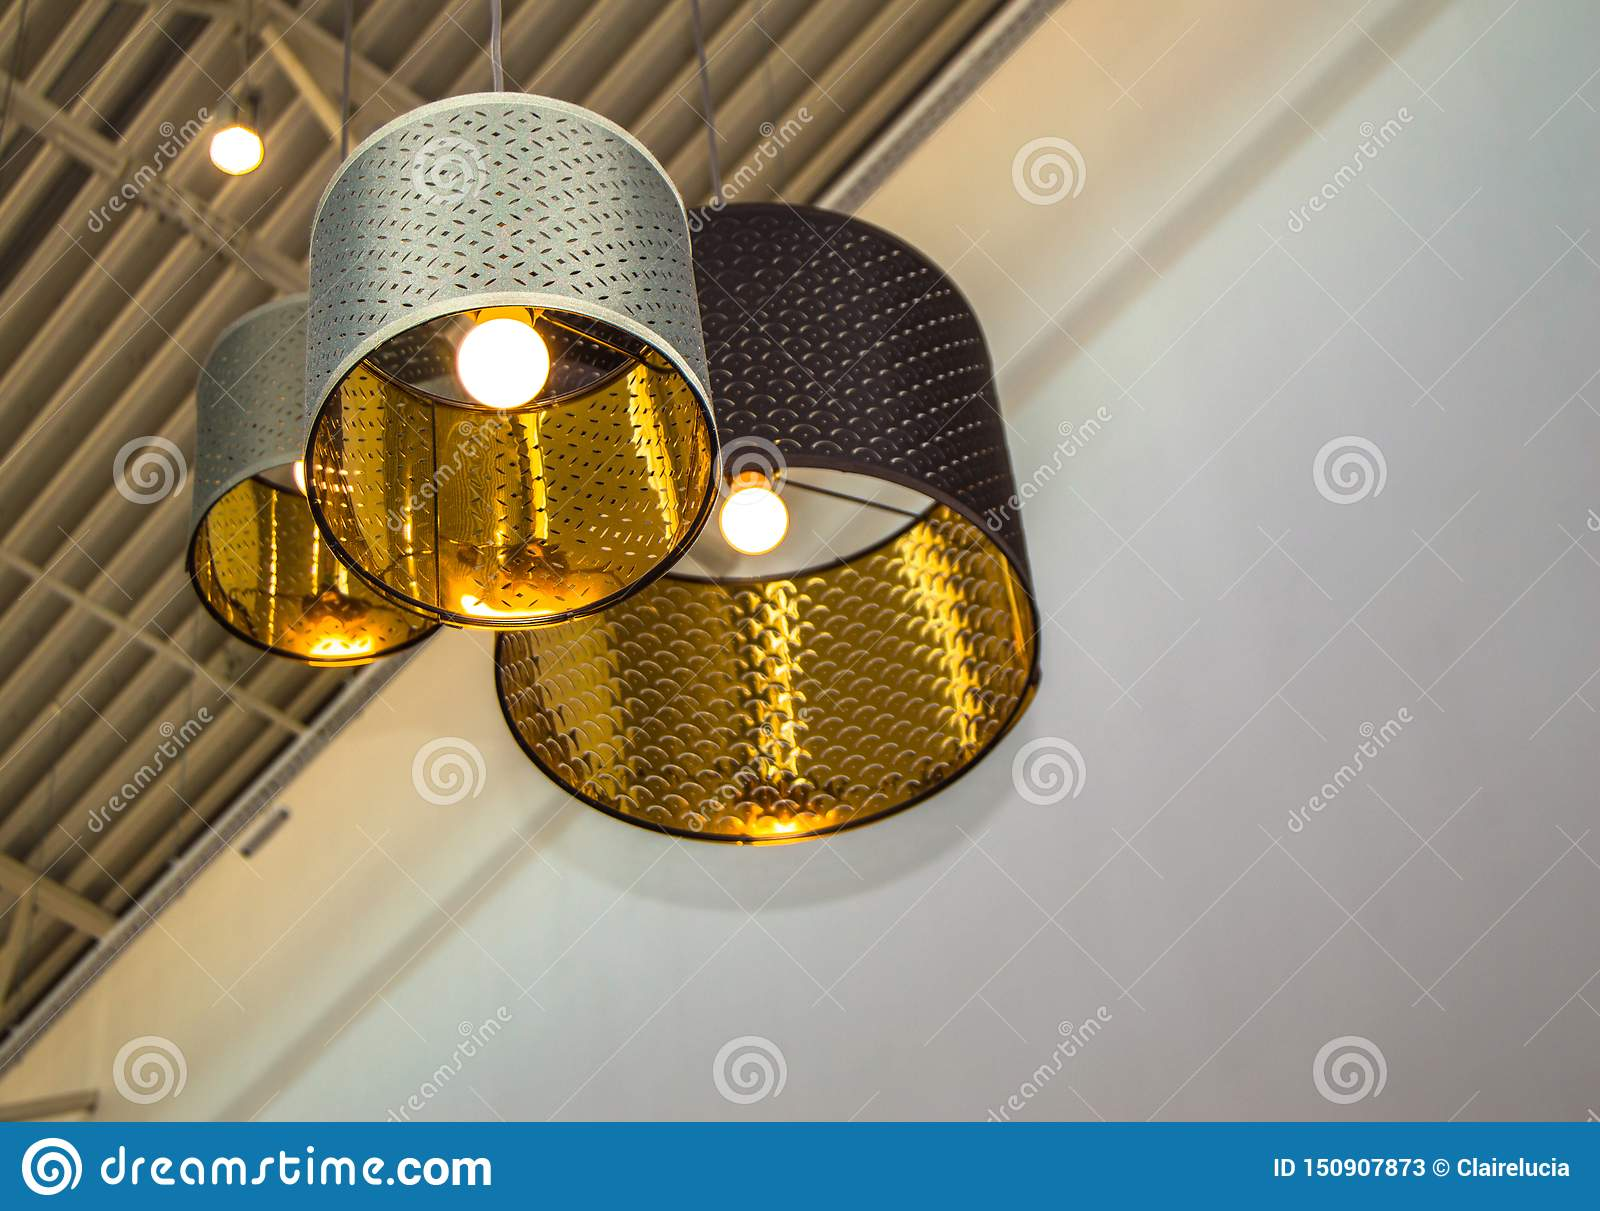 Modern style bronze decorative lamps and Golden lampshades hang on a long rope, industrial ceiling, interior design